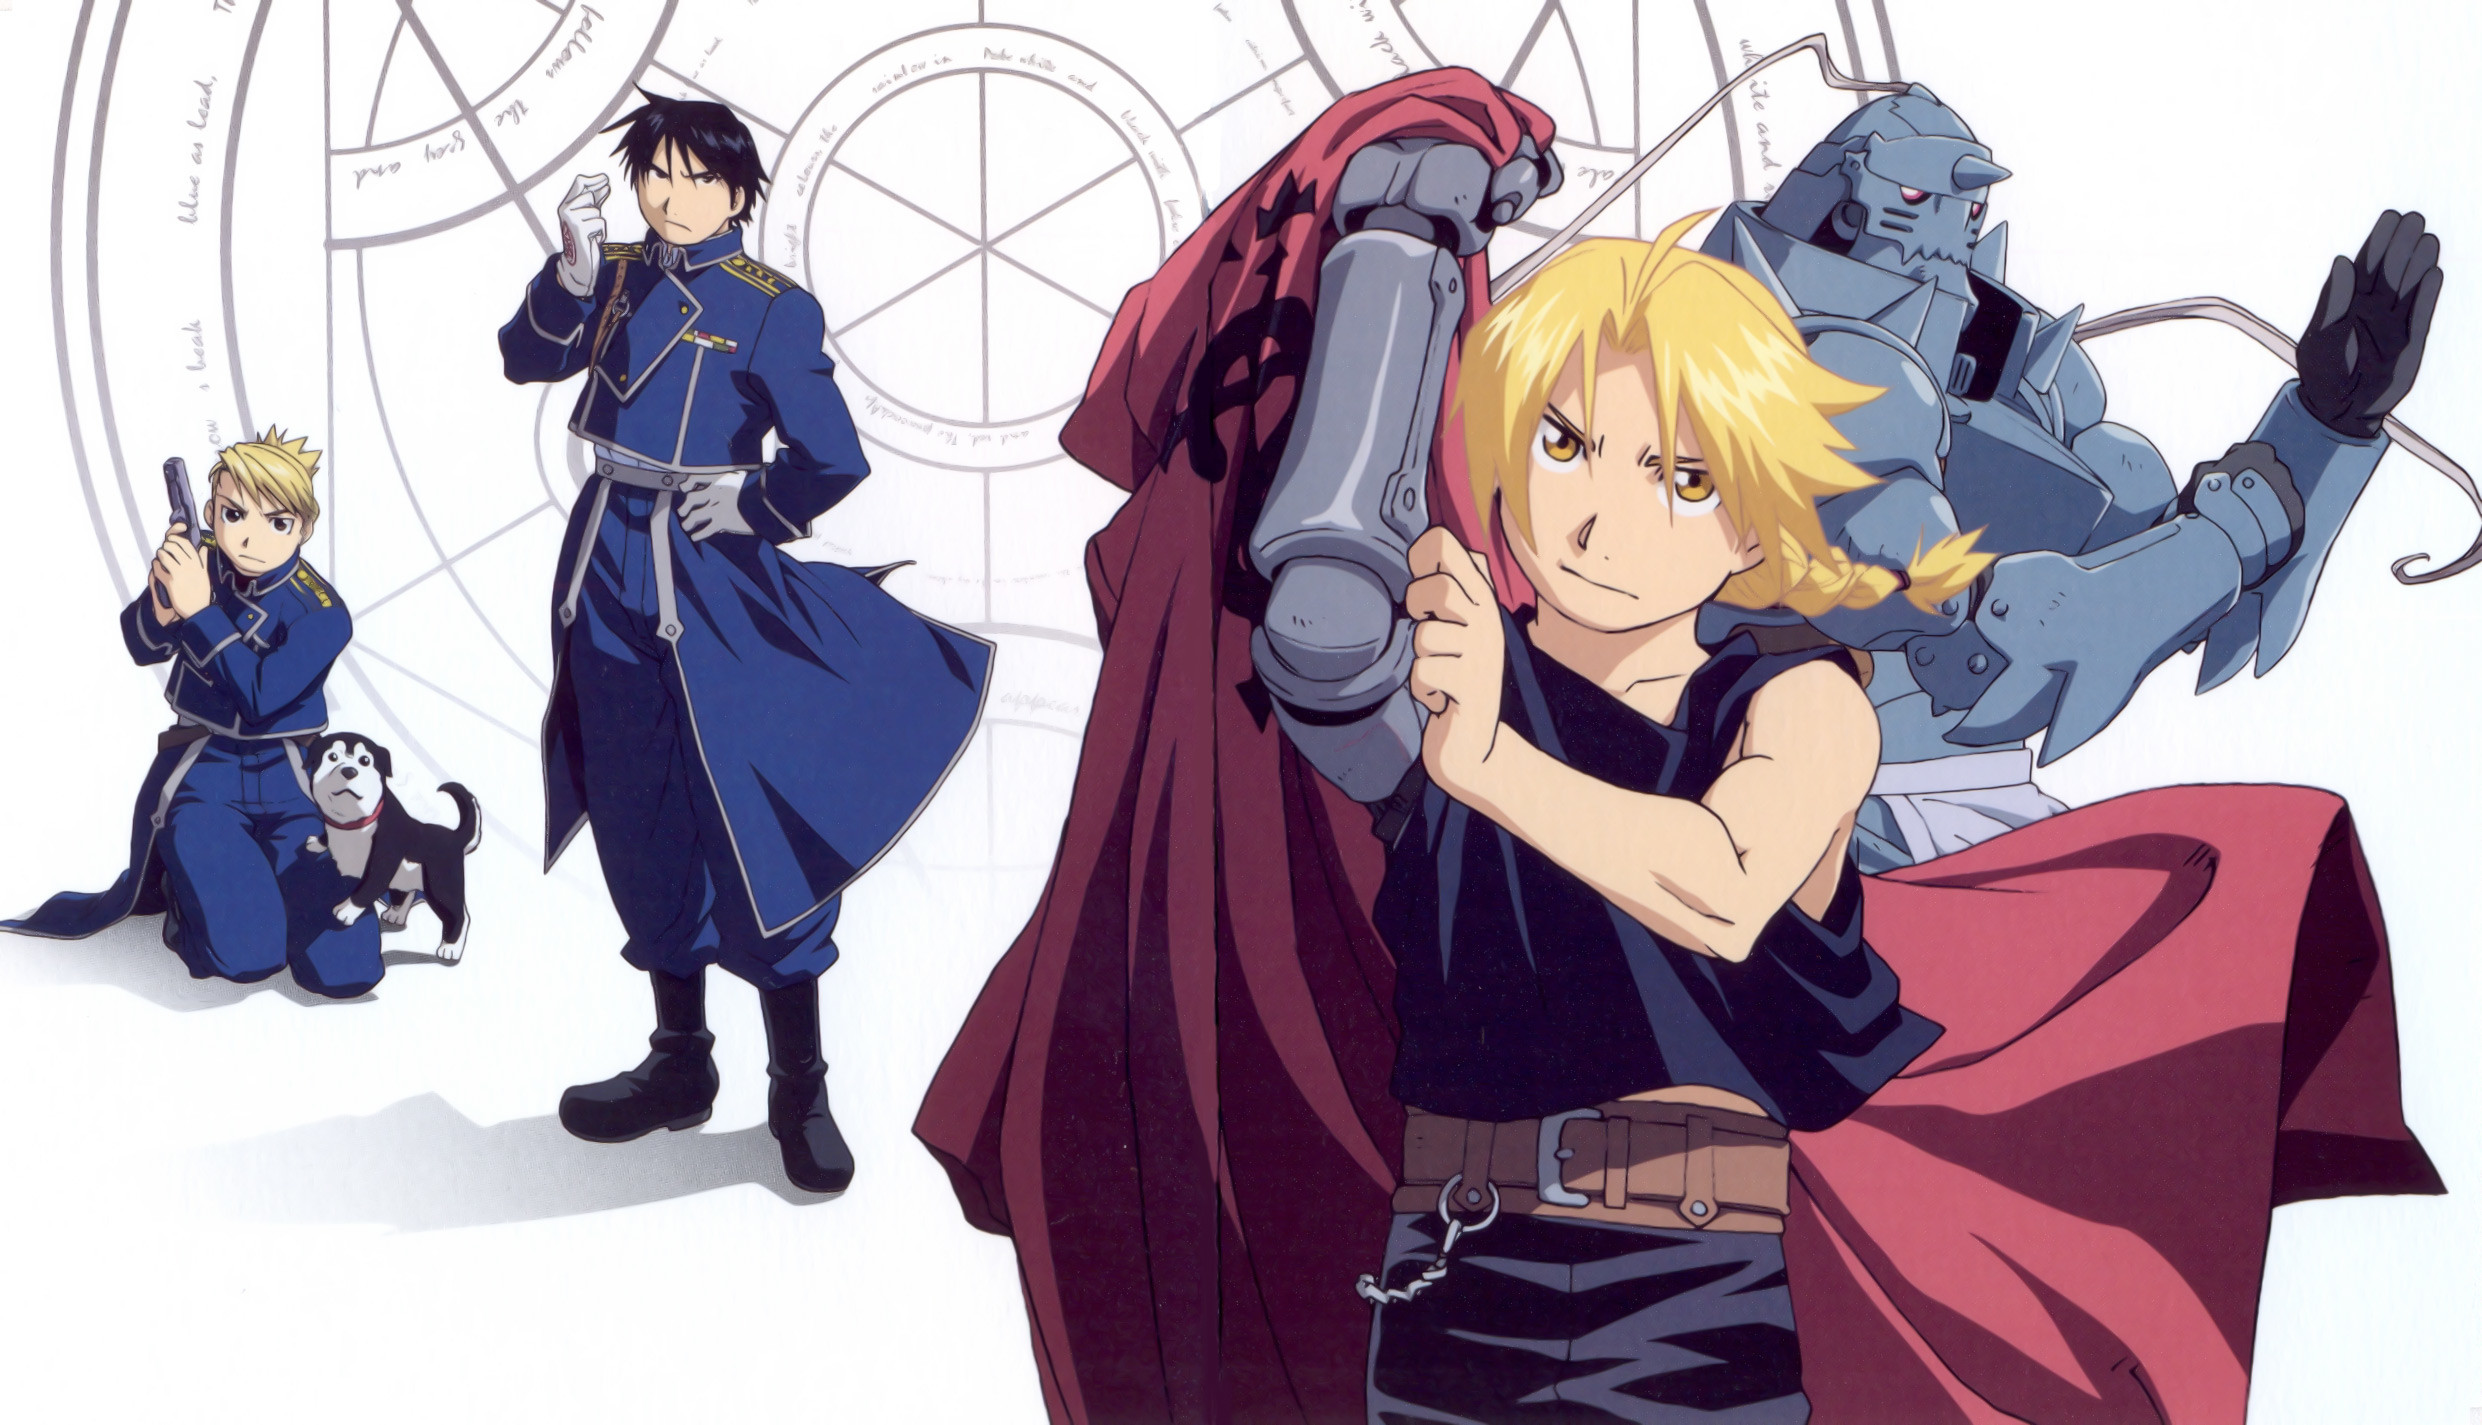 Res: 2482x1425, FullMetal Alchemist Pics, Anime Collection